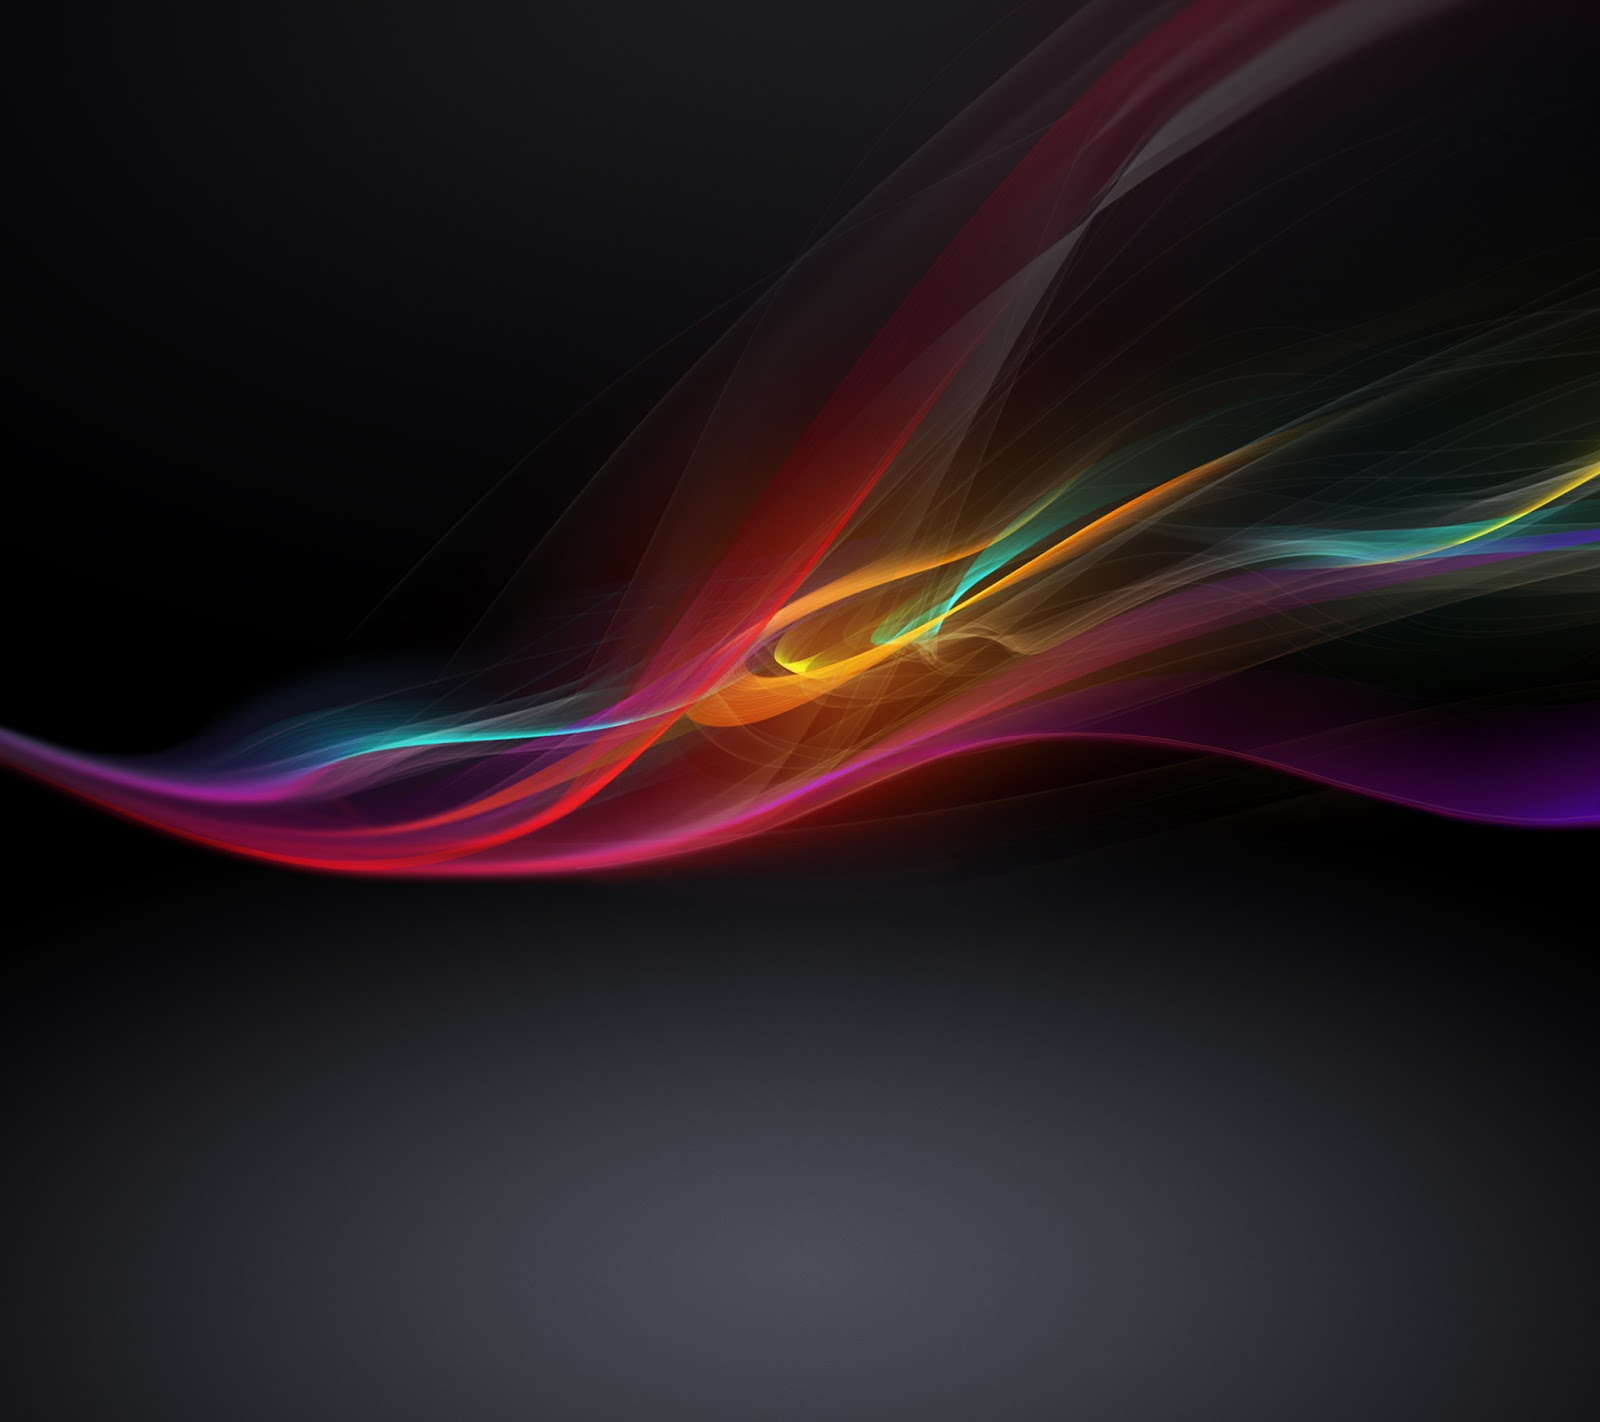 experia z wallpaper hd